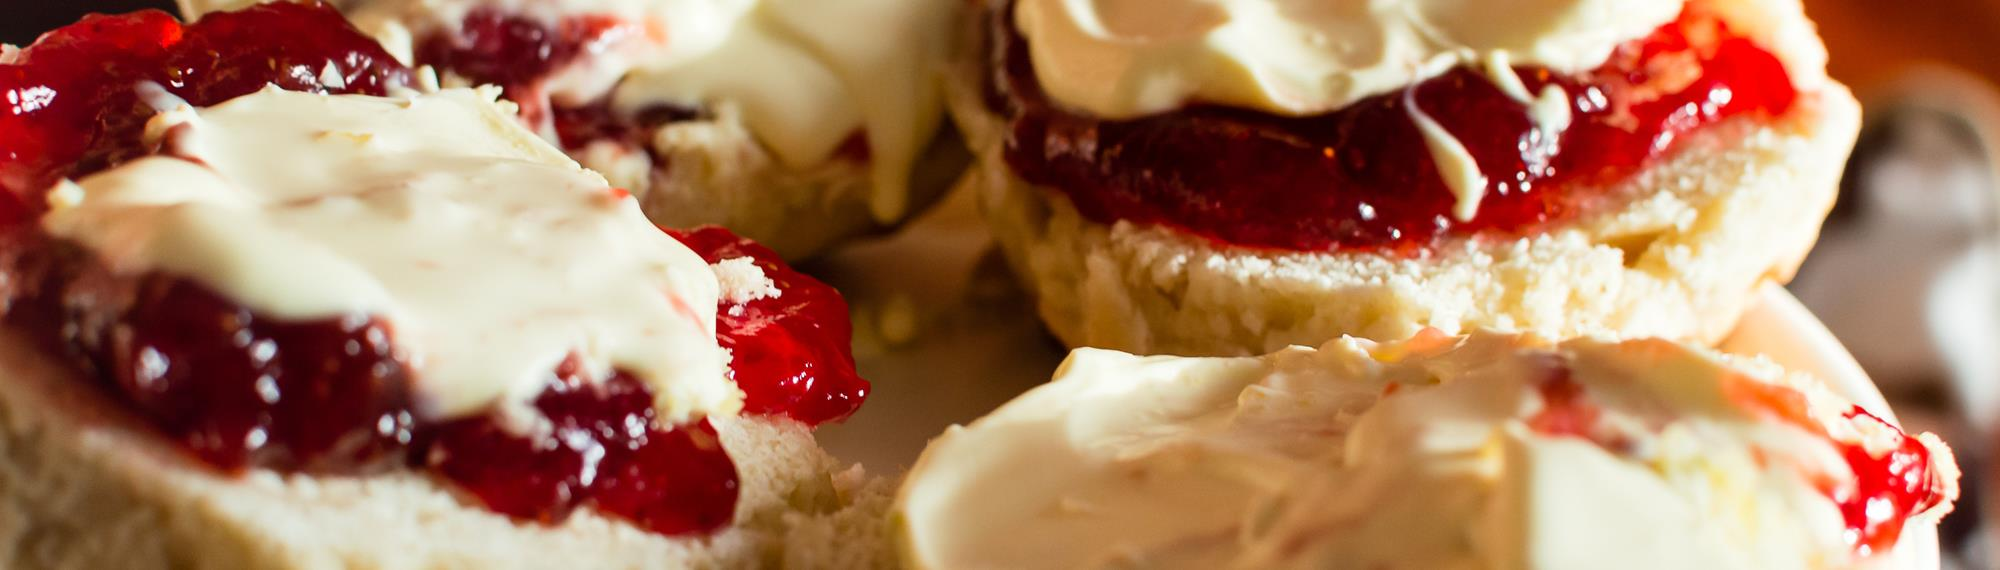 High Tea - delicious fresh scones with jam and cream.